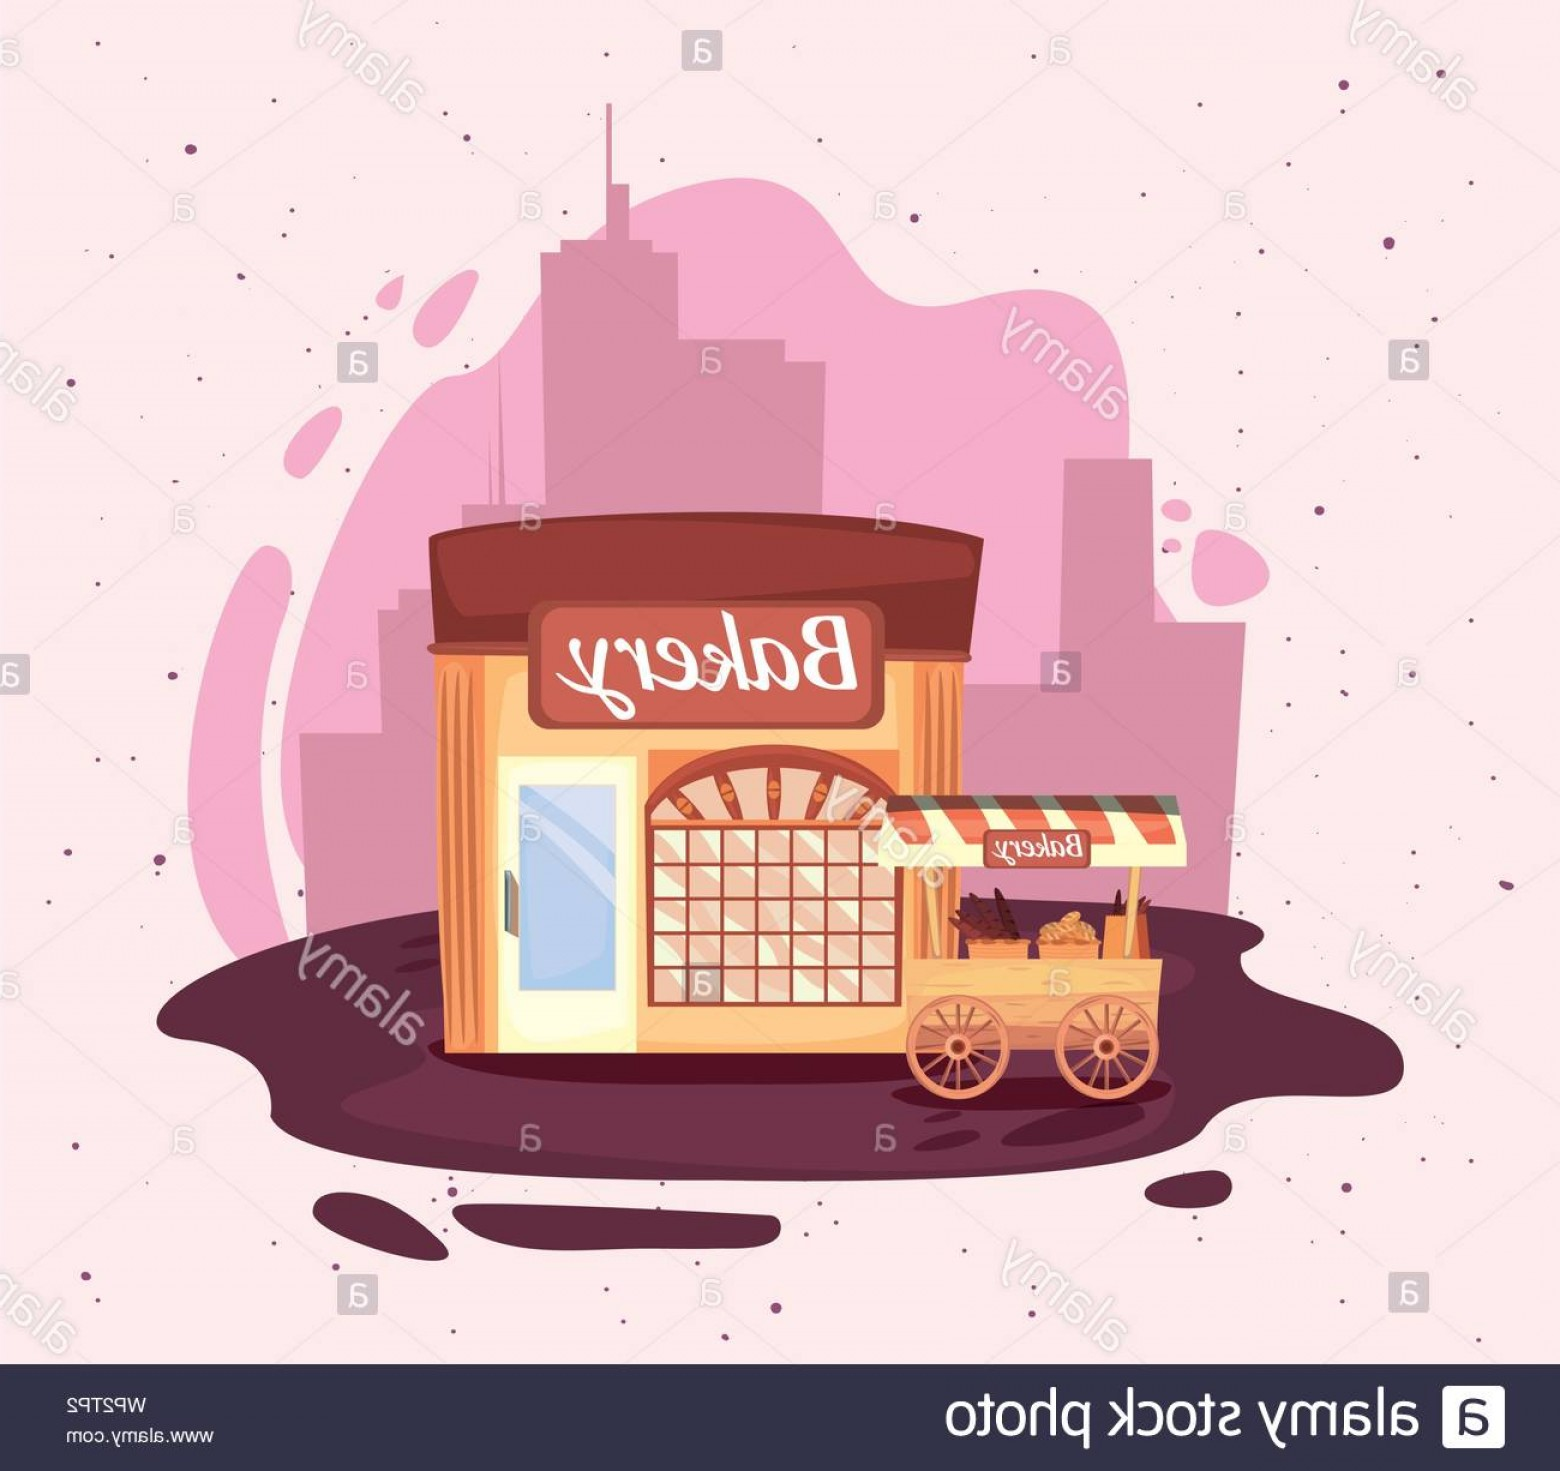 Commercial Booth Vector: Bakery Booth And Shop Street Market Commerce Flat Design Vector Illustration Image